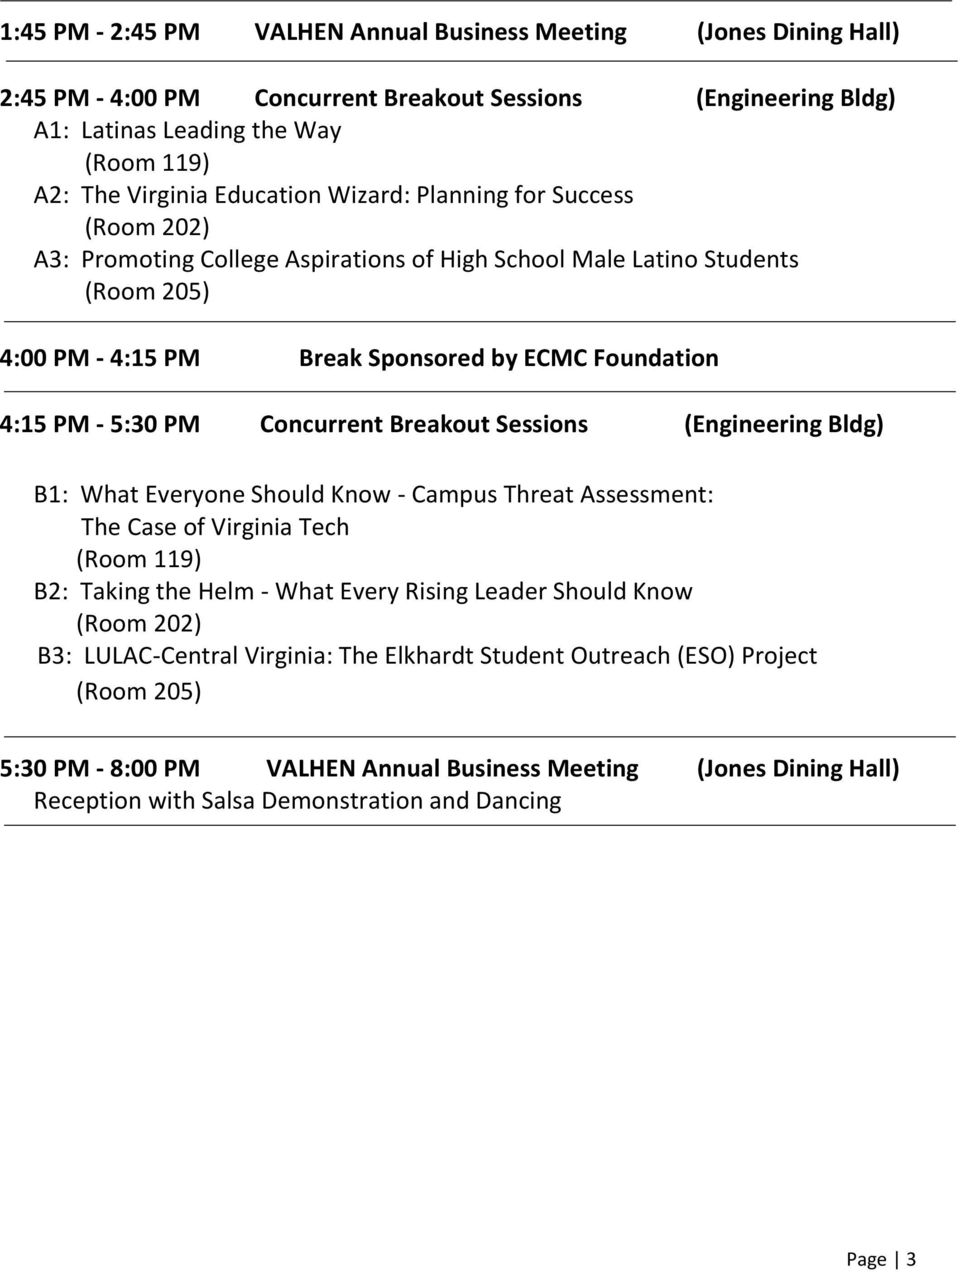 PM Concurrent Breakout Sessions (Engineering Bldg) B1: What Everyone Should Know - Campus Threat Assessment: The Case of Virginia Tech (Room 119) B2: Taking the Helm - What Every Rising Leader Should